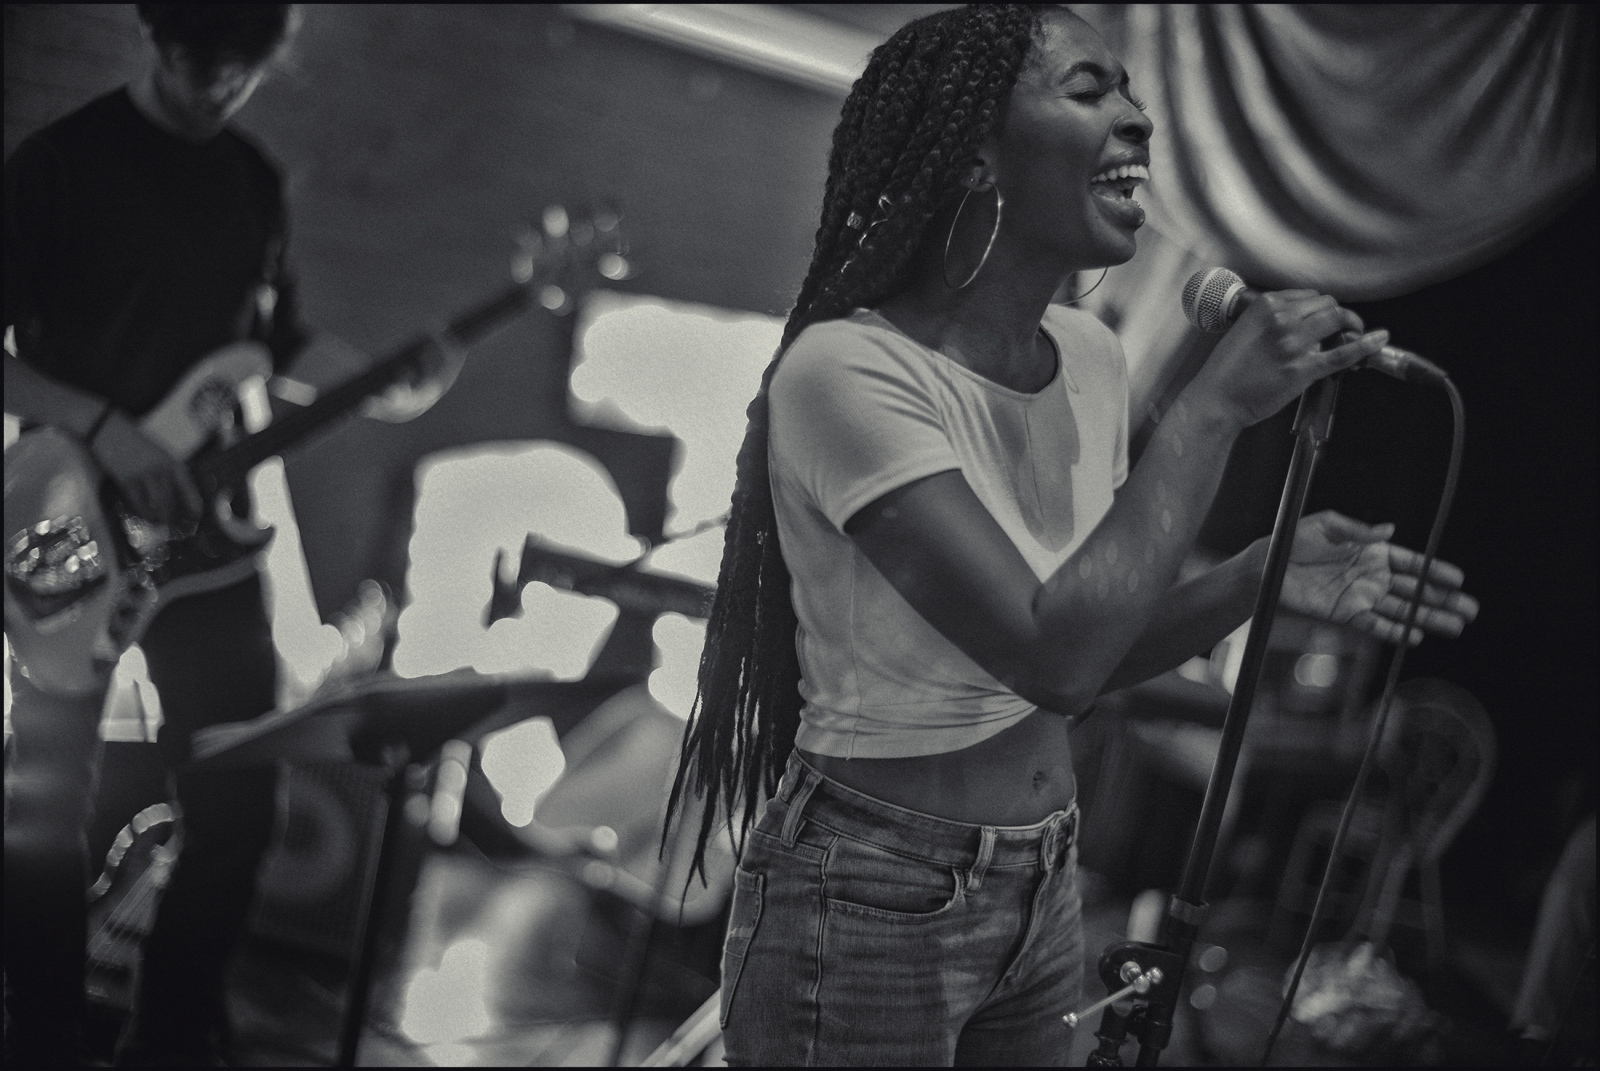 """Chaia"" Dent, student in contemporary & modern music at Loyola University performing at ""Art Garage"" in the ByWater district of New Orleans. 2019."